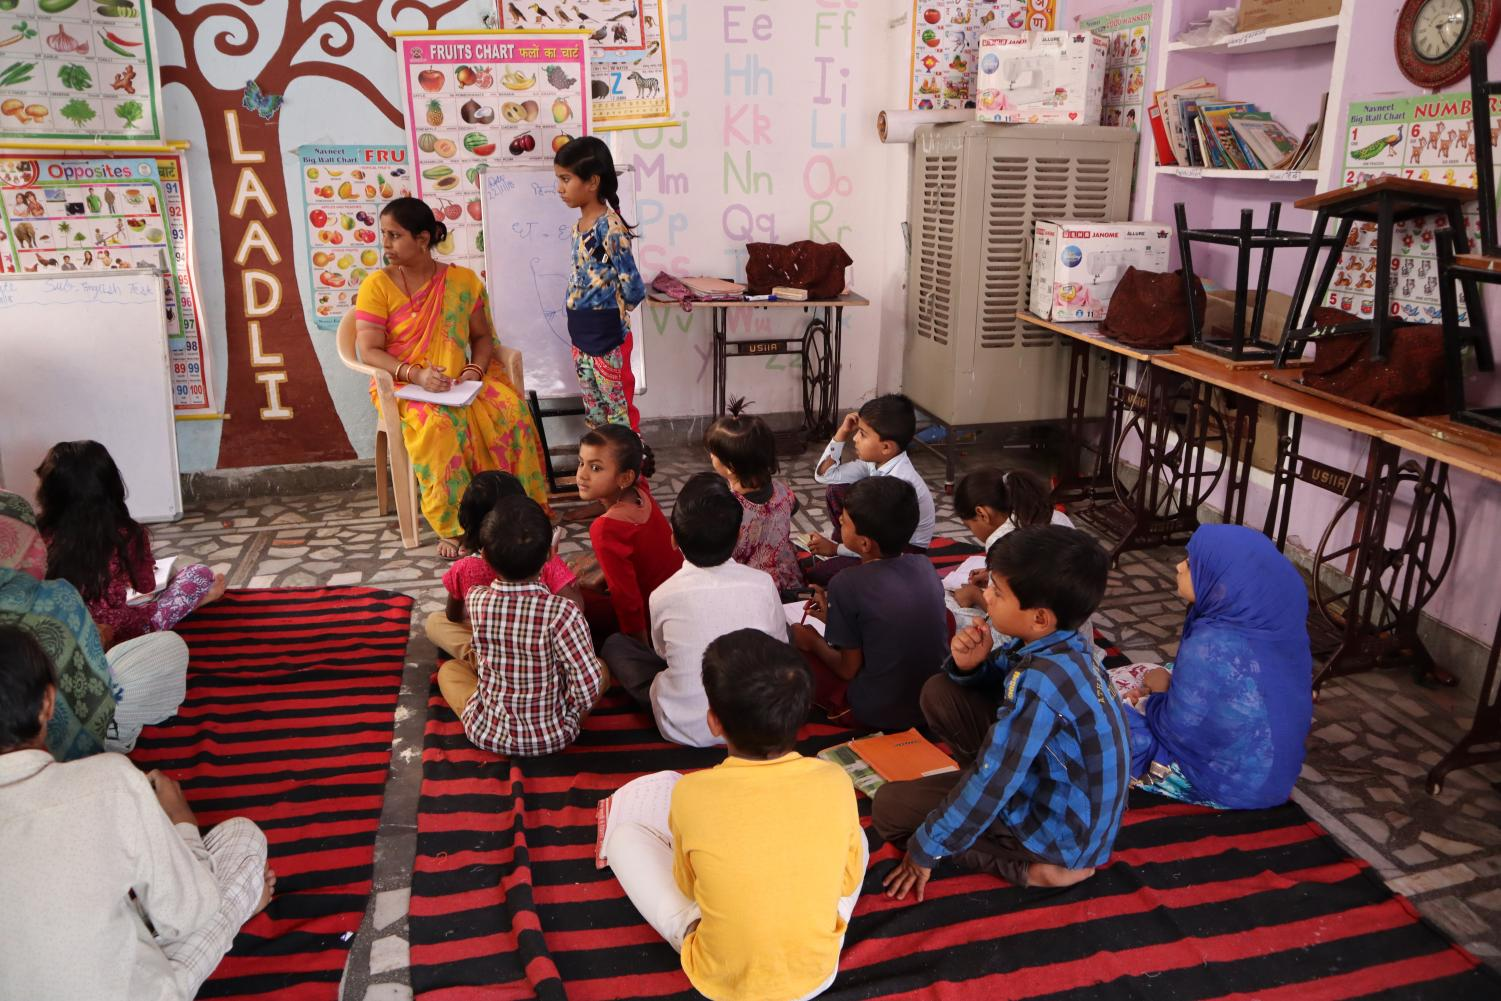 Students+take+lessons+at+the+Sambhali+Trust+to+learn+academics+and+life+skills.+Children+and+women+are+taught+how+to+live+independently+through+classes+at+the+Sambhali+Trust.+